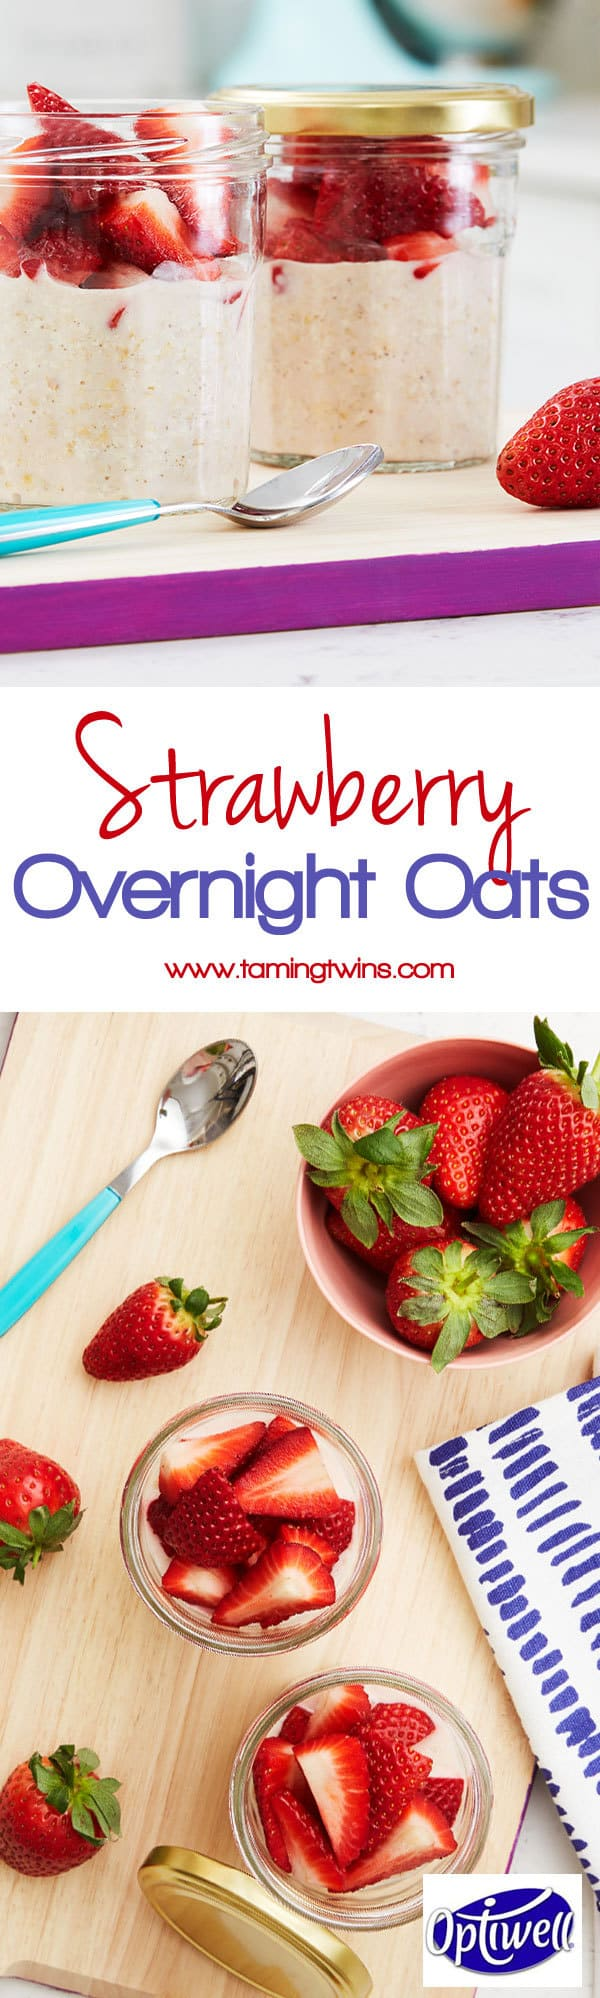 Overnight oats made with Optiwell yoghurt drink, for a higher protein breakfast, to keep you fuller for longer. Packed with strawberry and raspberry flavour. http://www.tamingtwins.com